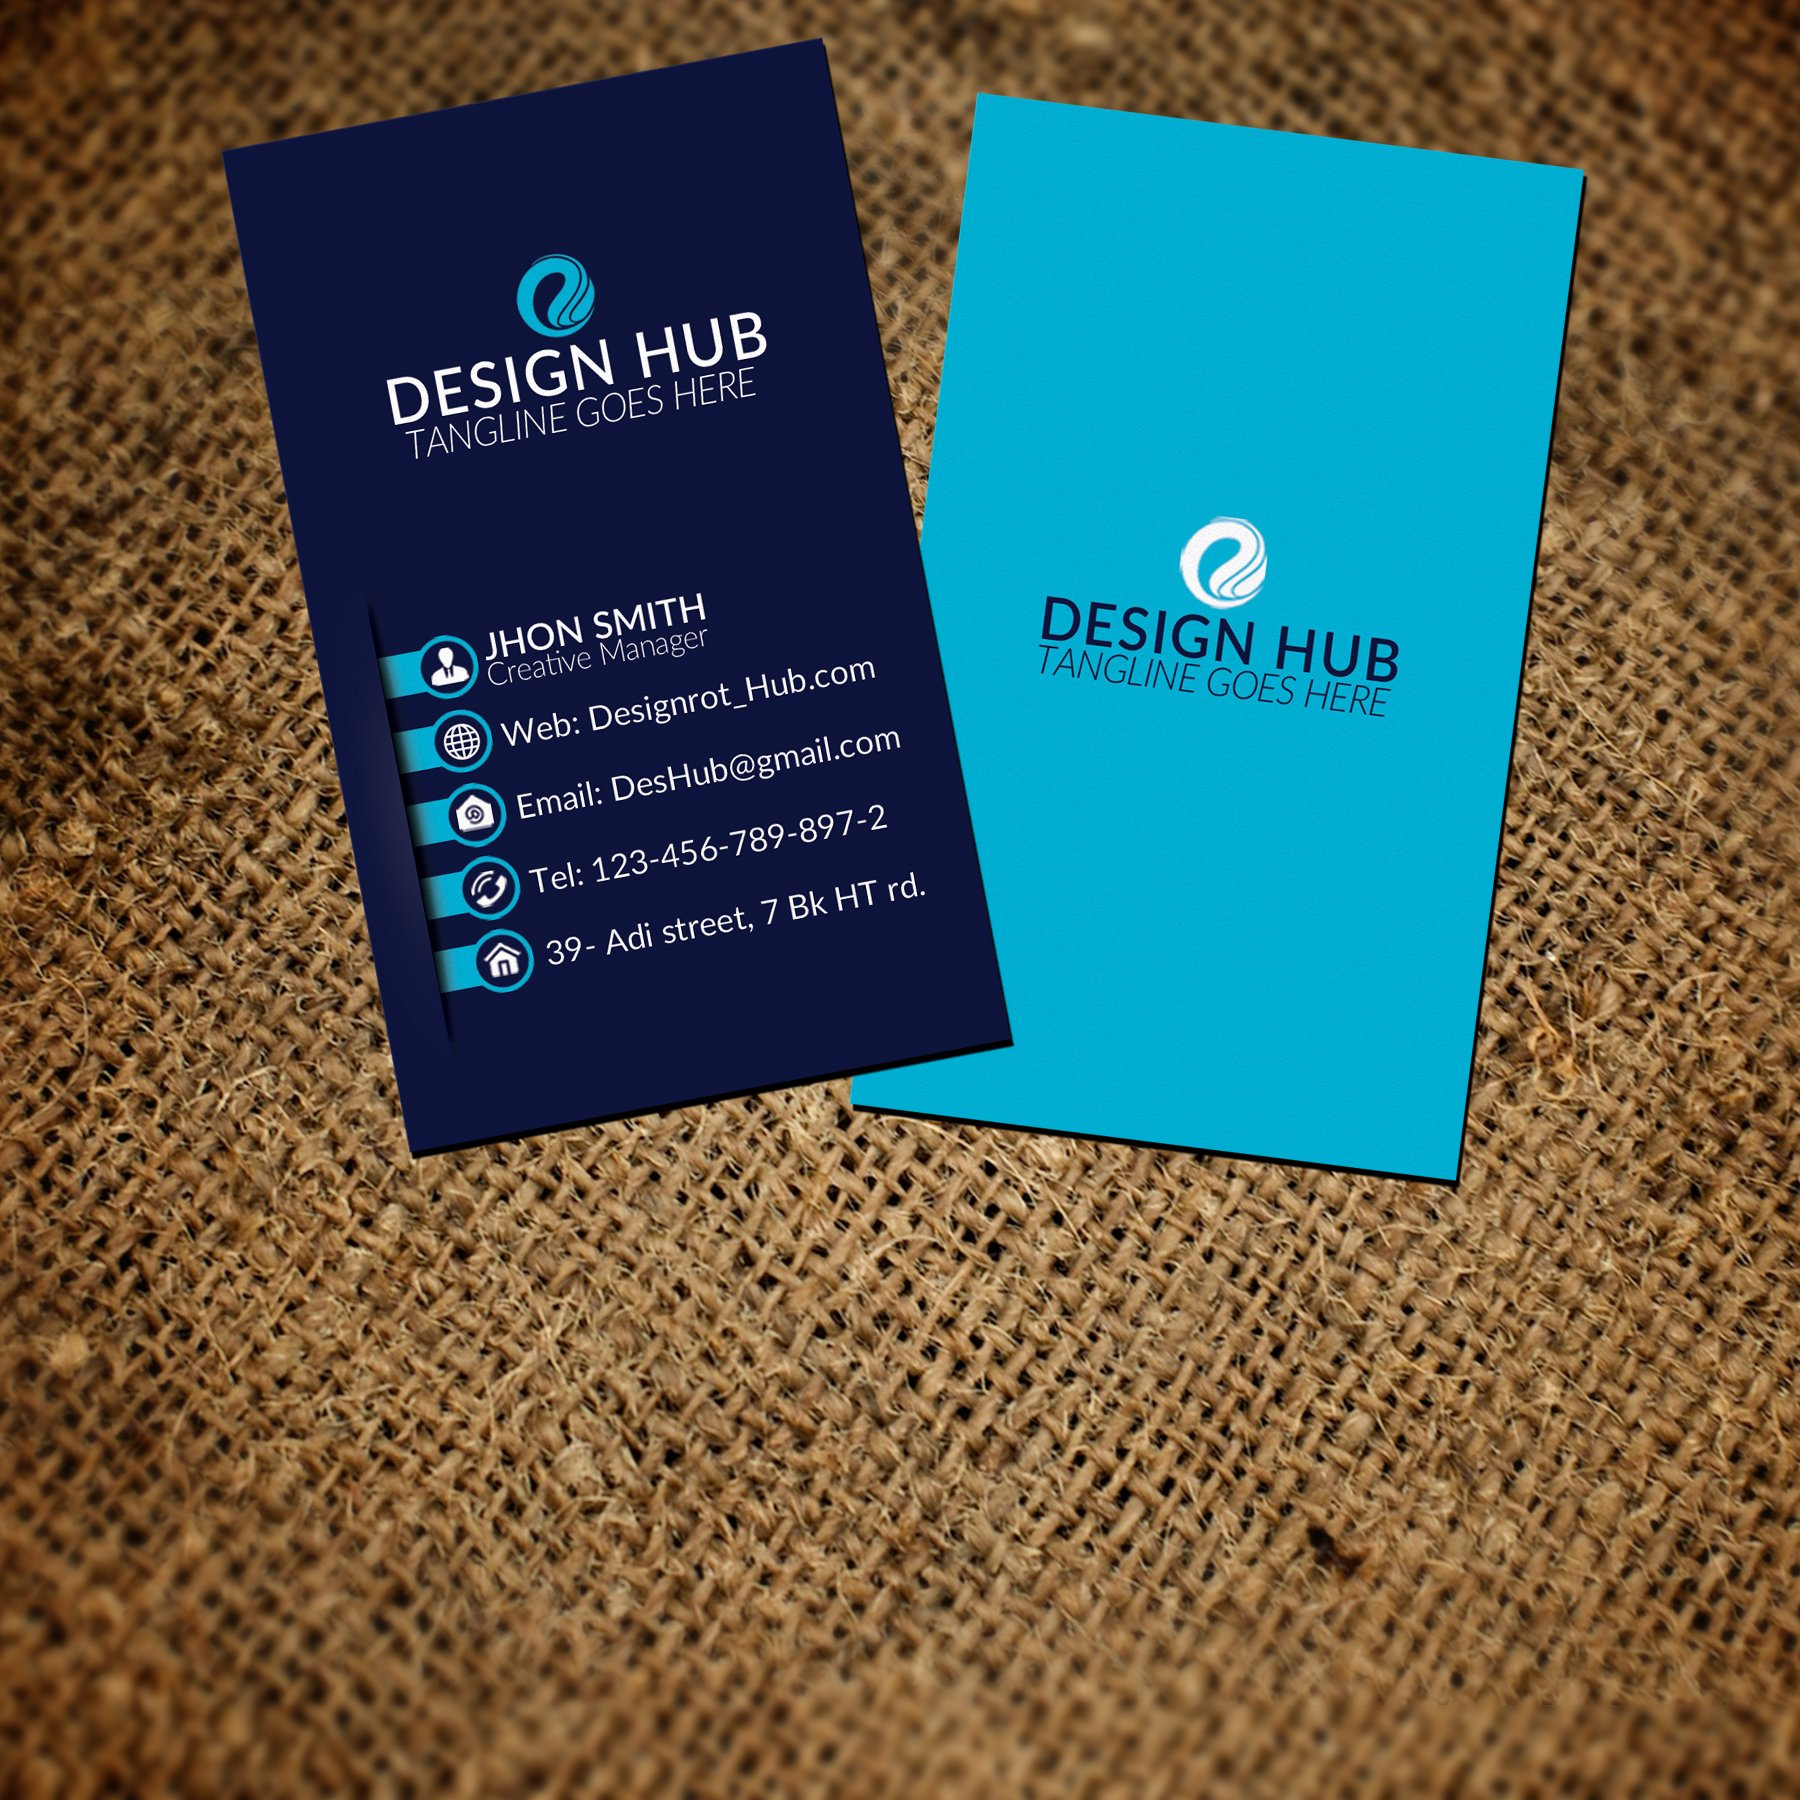 Vertical Business Card Template Free: Fabulous Vertical Business Card